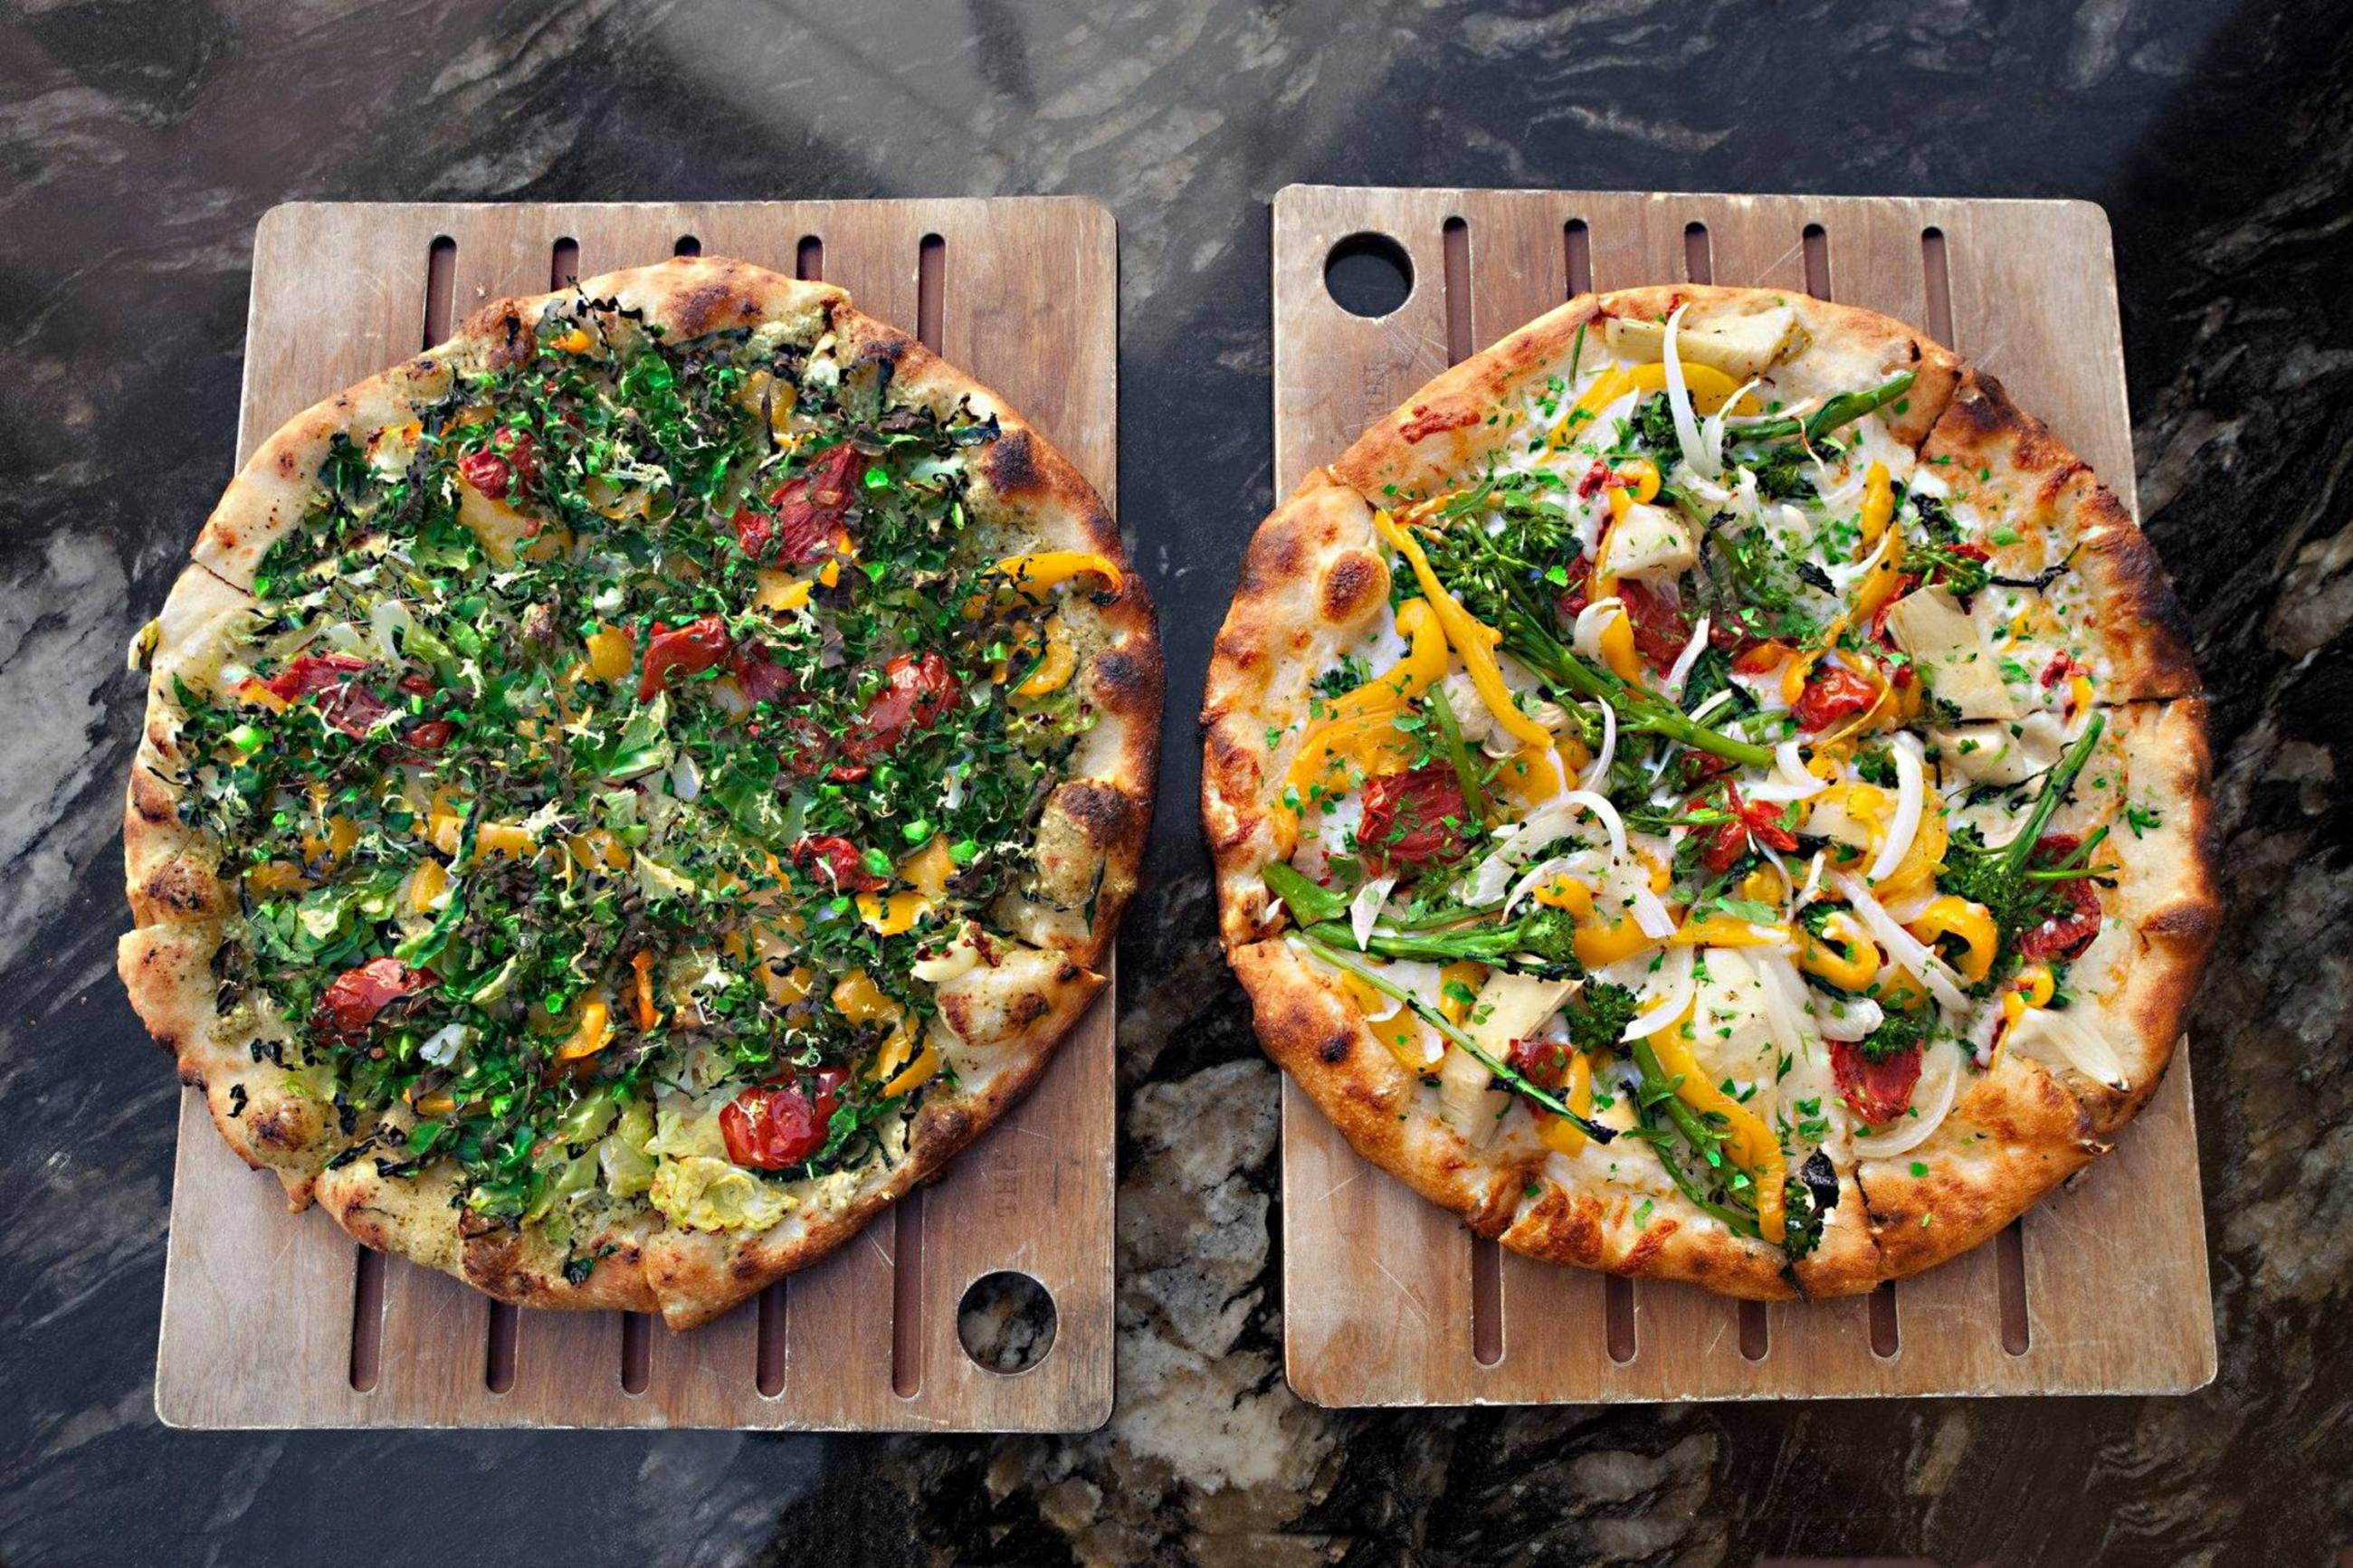 Vegan pizzas at The Luggage Room